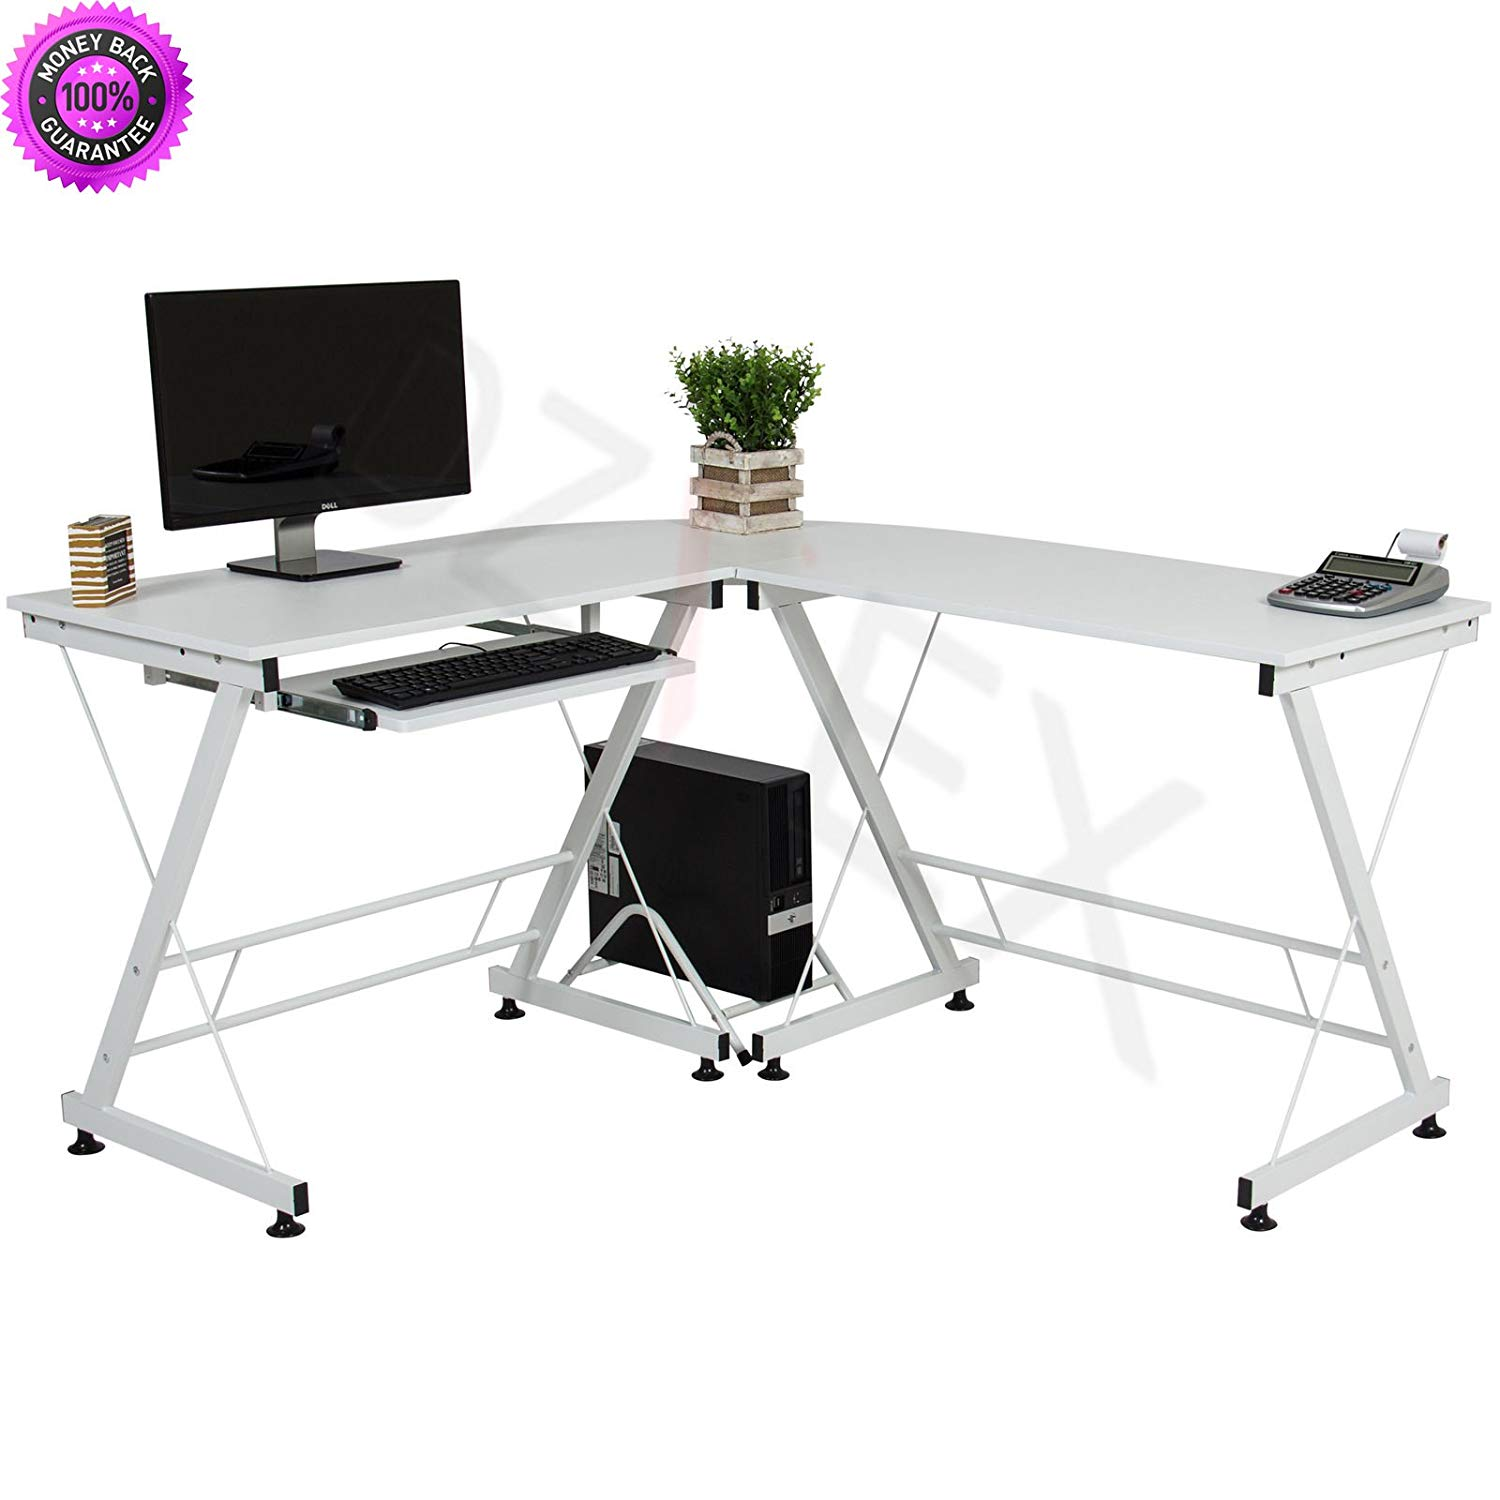 DzVeX_Wood L-Shape Corner Computer Desk PC Laptop Table Workstation Home Office -White And home office furniture collections modular home office furniture office furniture office furniture